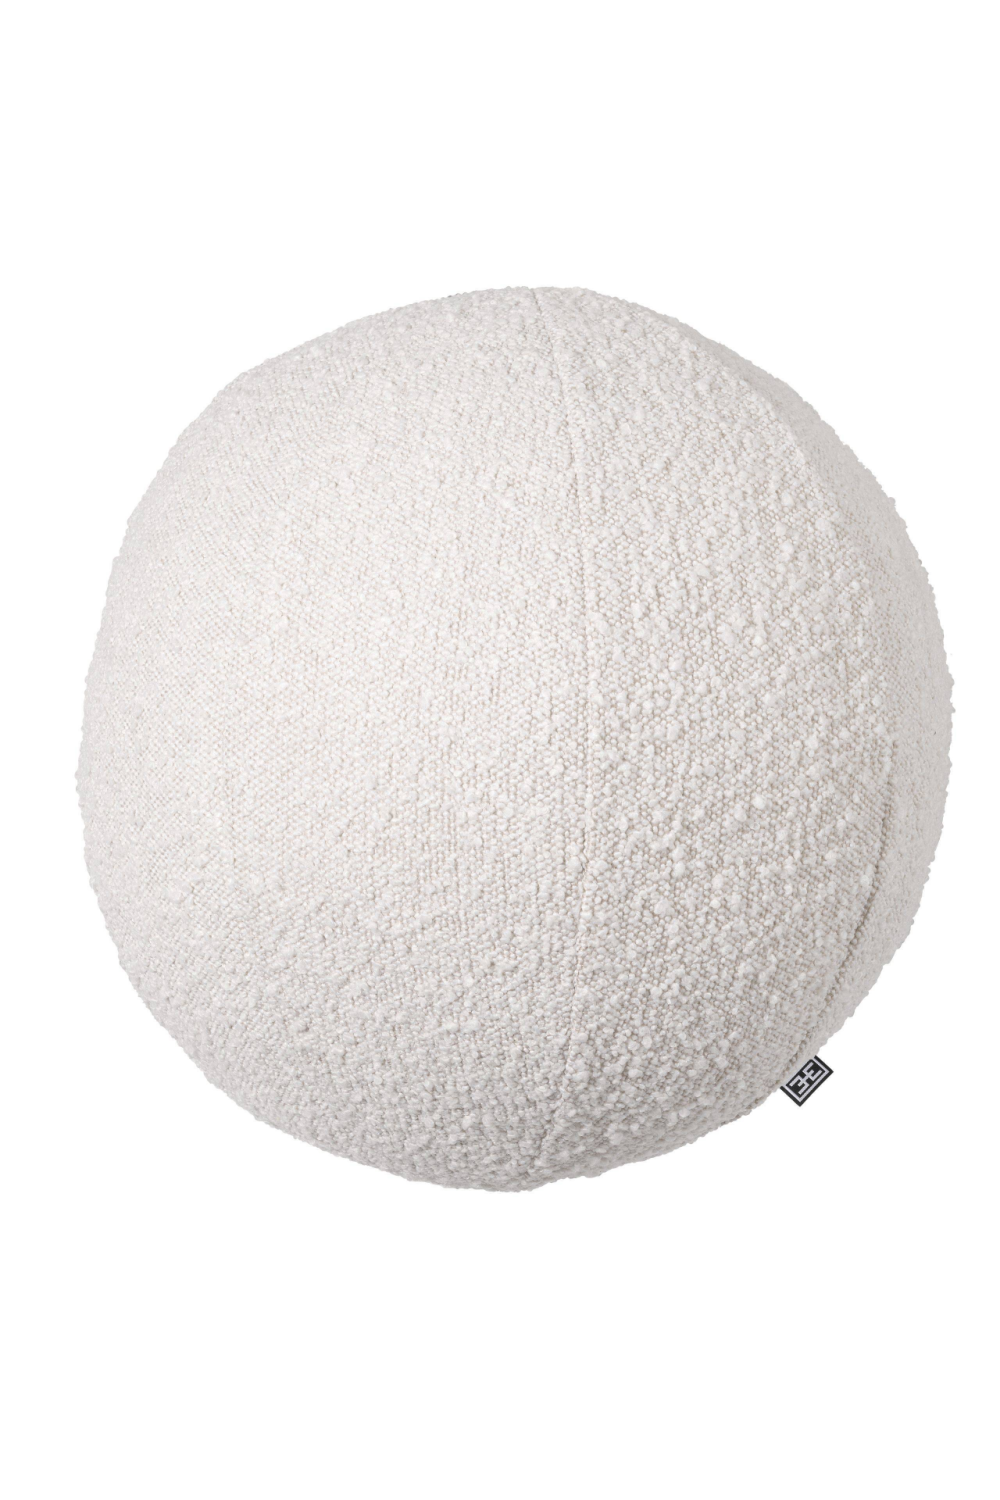 Boucle Cream Ball Shaped Pillow - Eichholtz Palla L | OROA